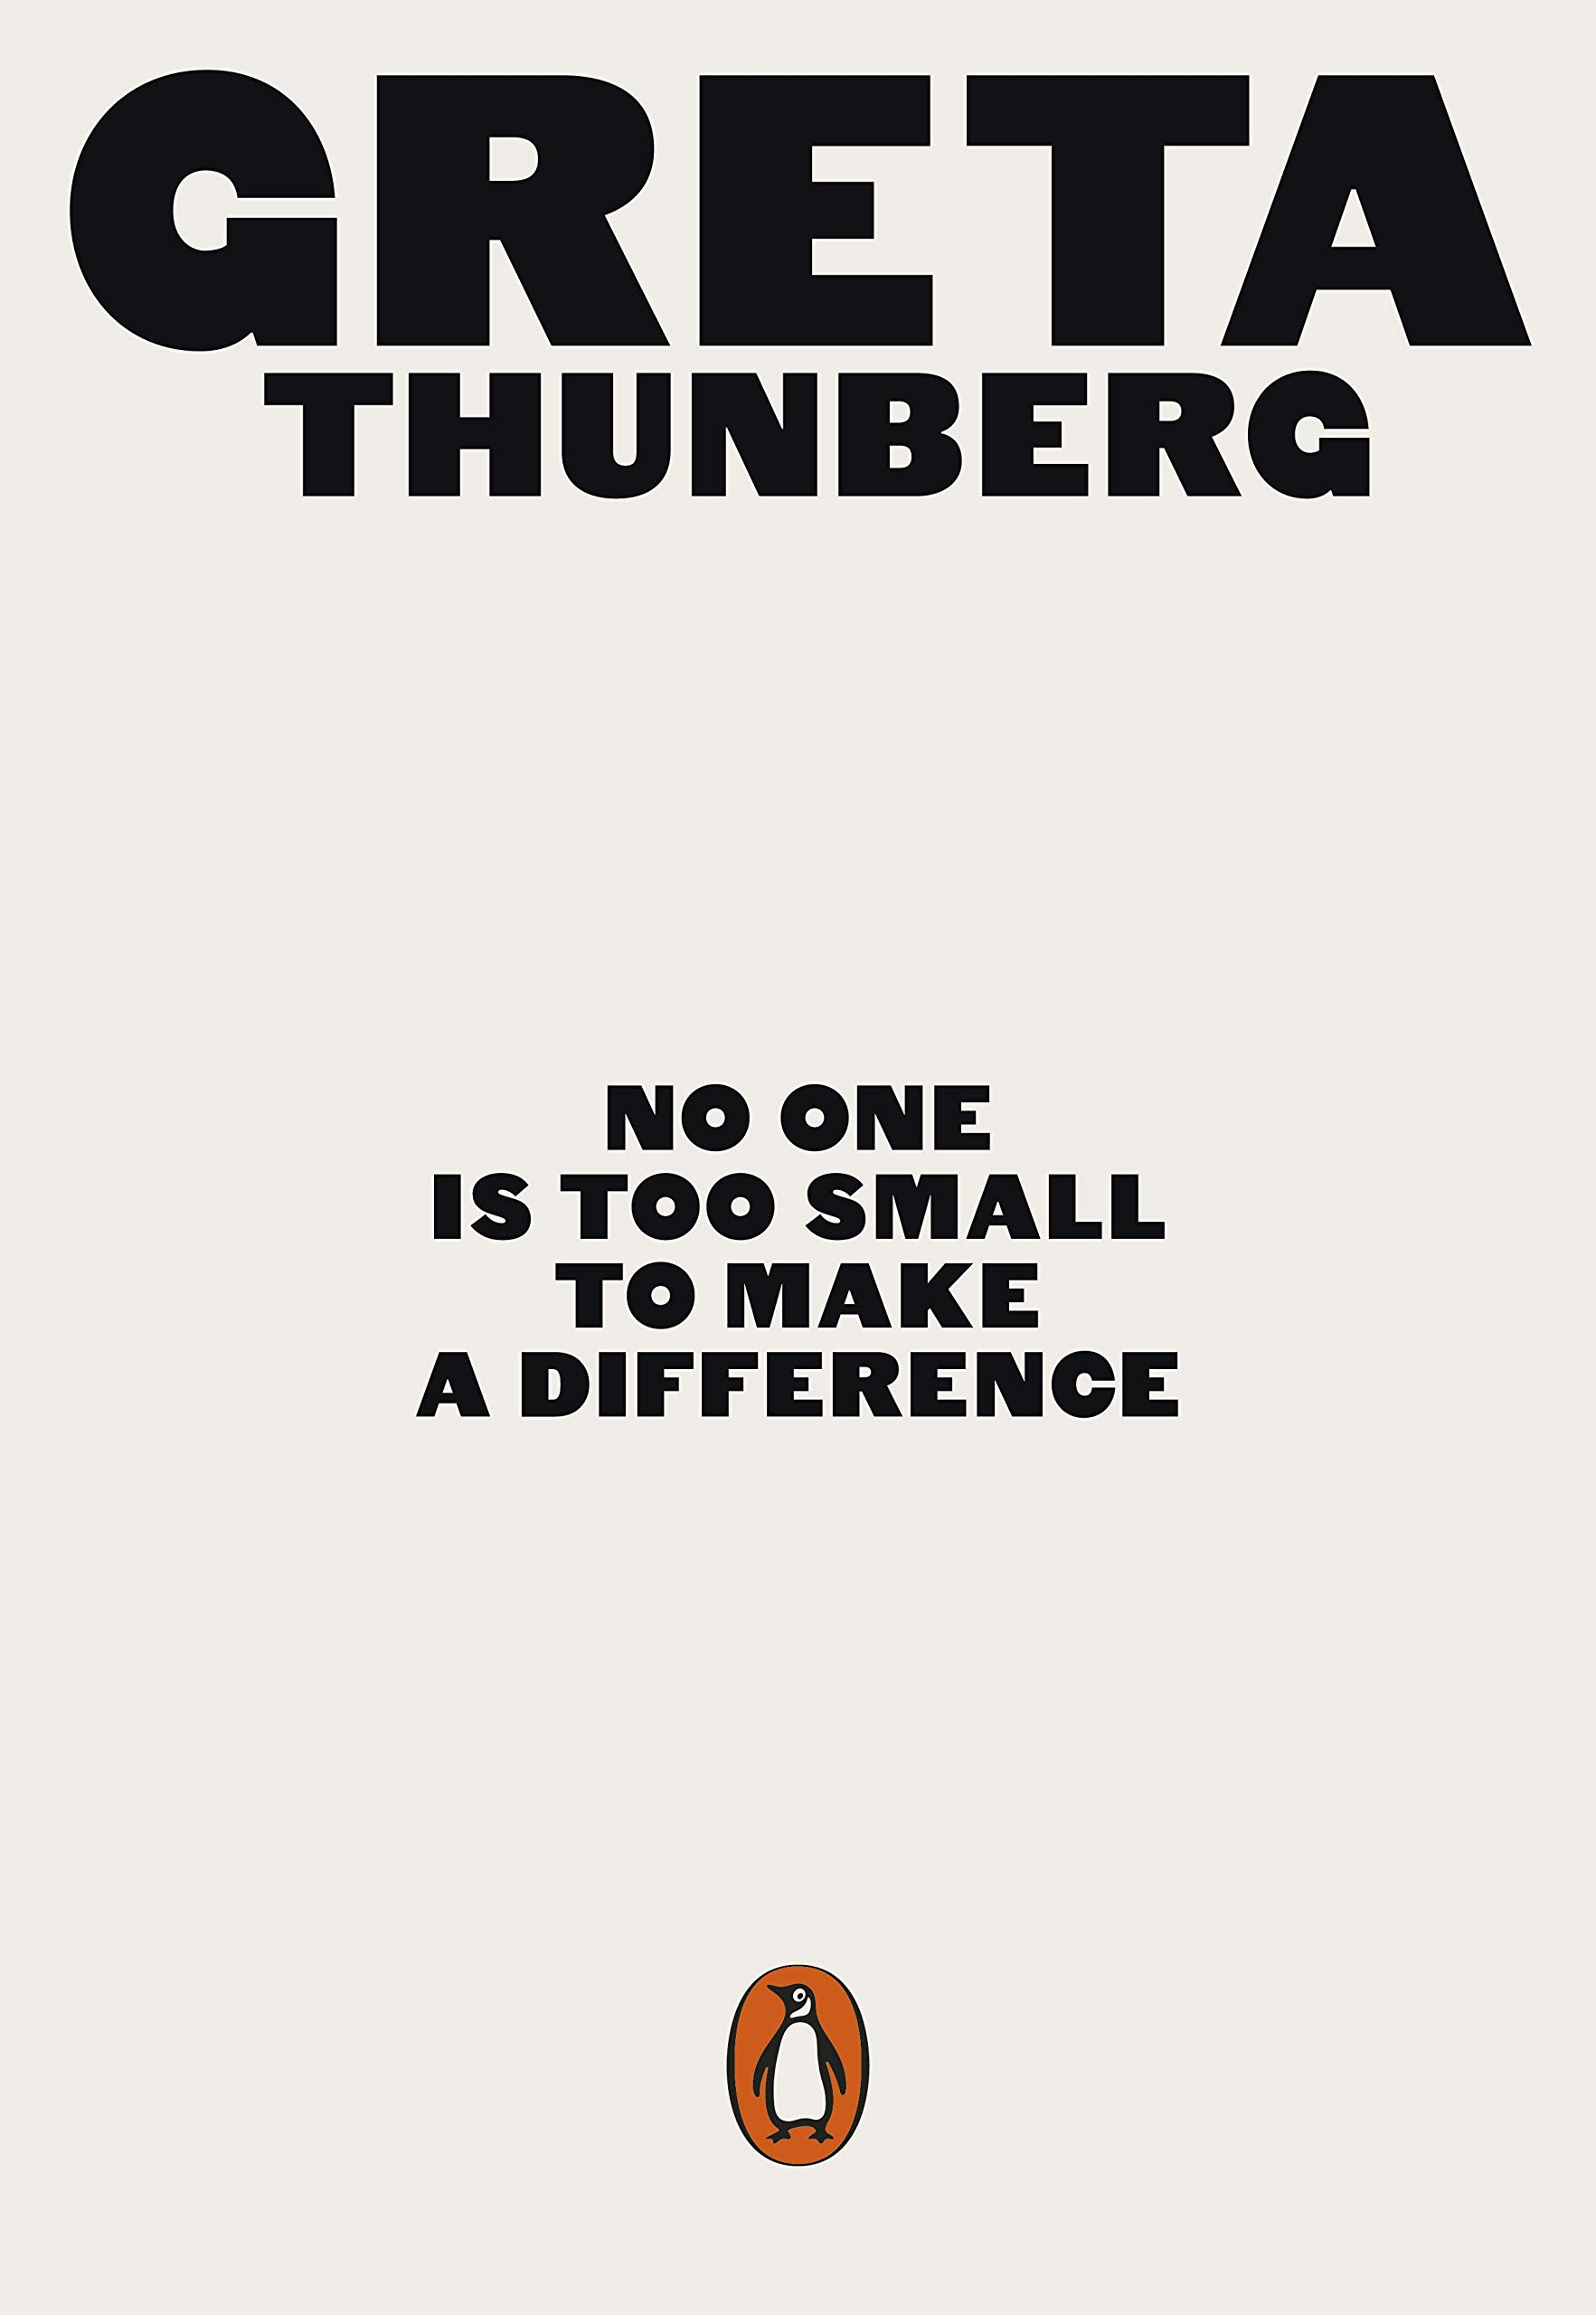 No One Is Too Small to Make a Difference: Amazon.co.uk: Thunberg, Greta:  9780141991740: Books